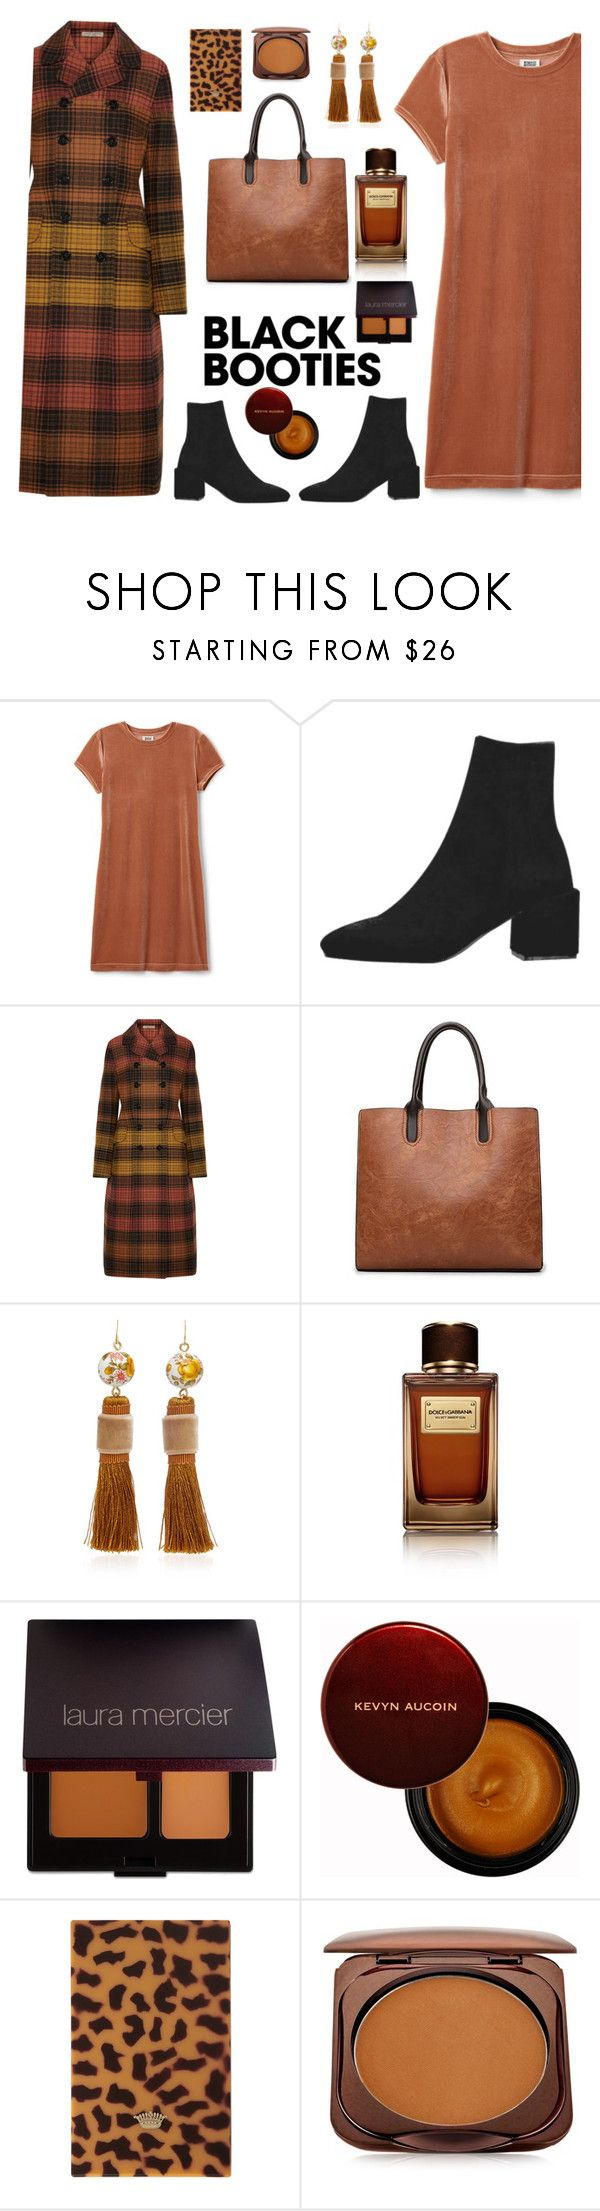 """Black booties"" by gul07 ❤ liked on Polyvore featuring Bottega Veneta, Mimilore, Dolce&Gabbana, Laura Mercier, Kevyn Aucoin, Sisley, Fashion Fair and blackbooties"